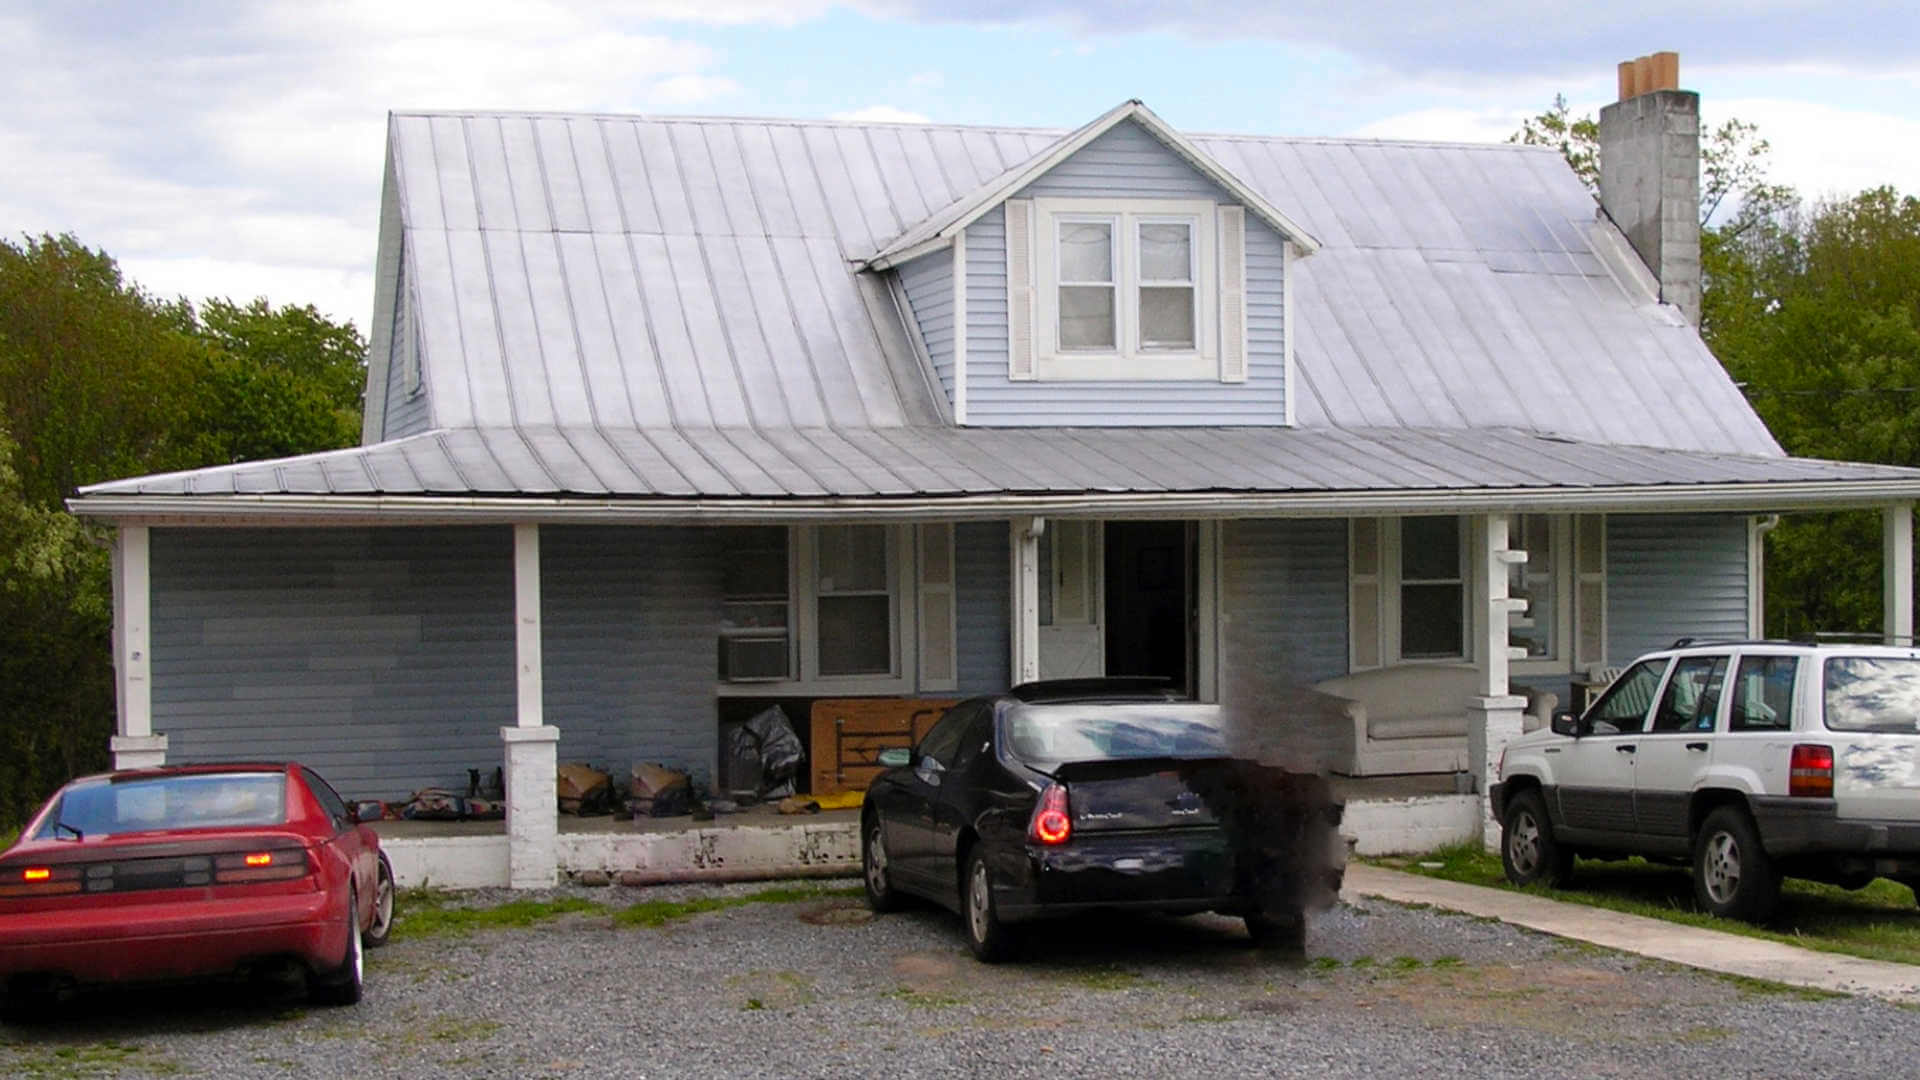 A house in SWVA that was $600/month which might have been close to real estate investing's 2% rule.